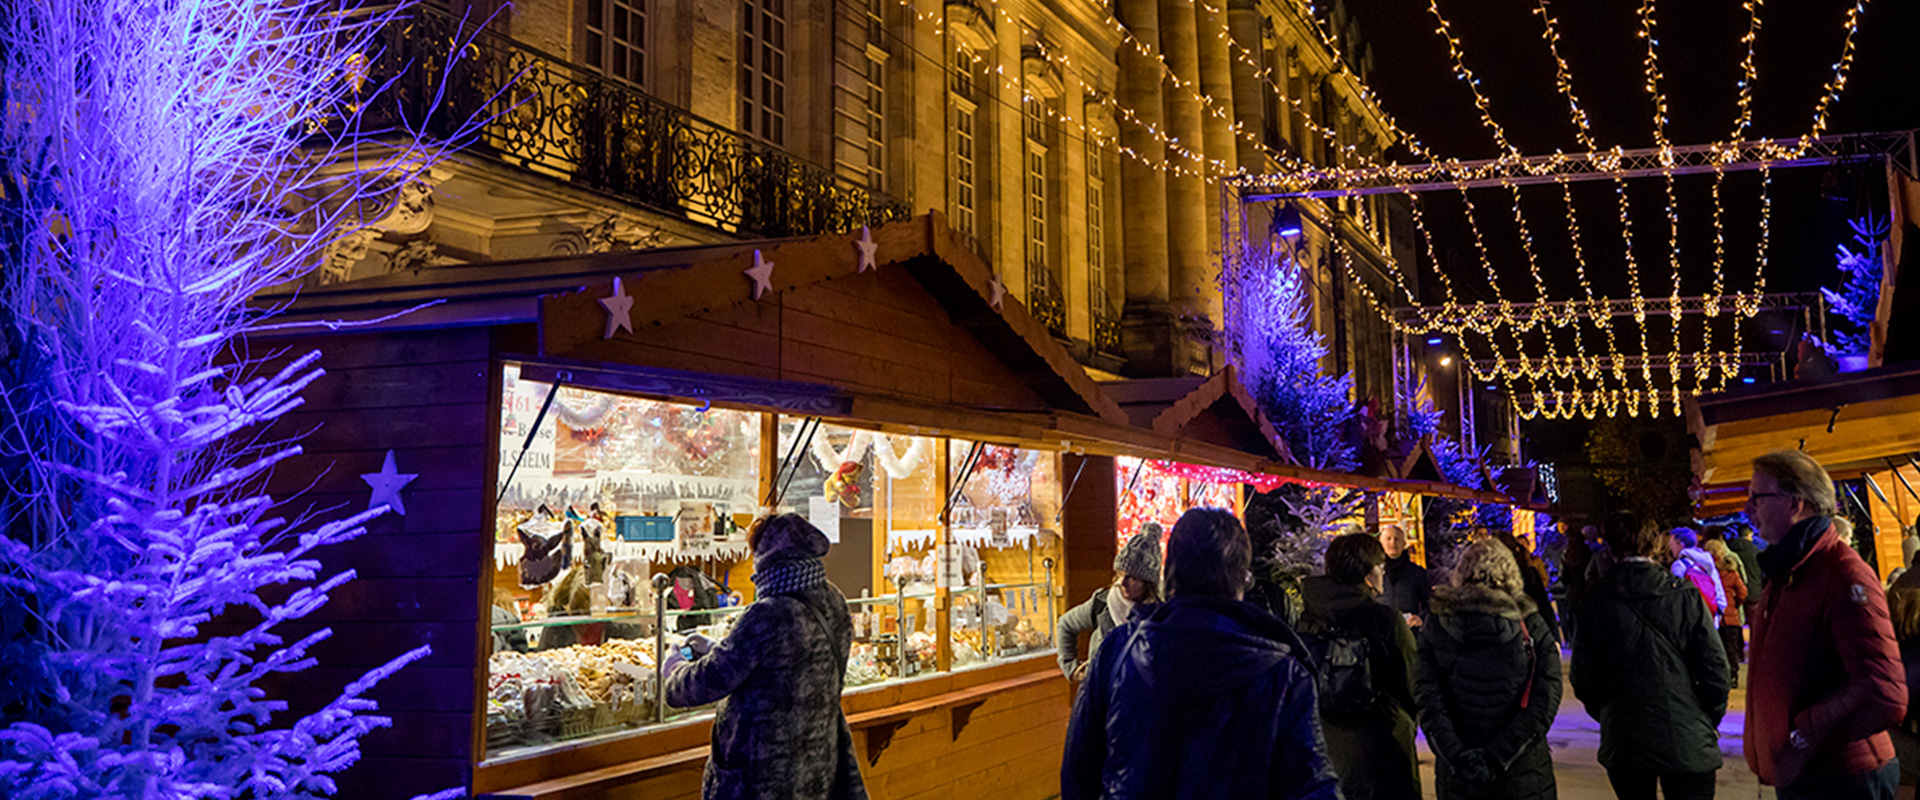 The Christmas Markets in 1 day: the must-see highlights